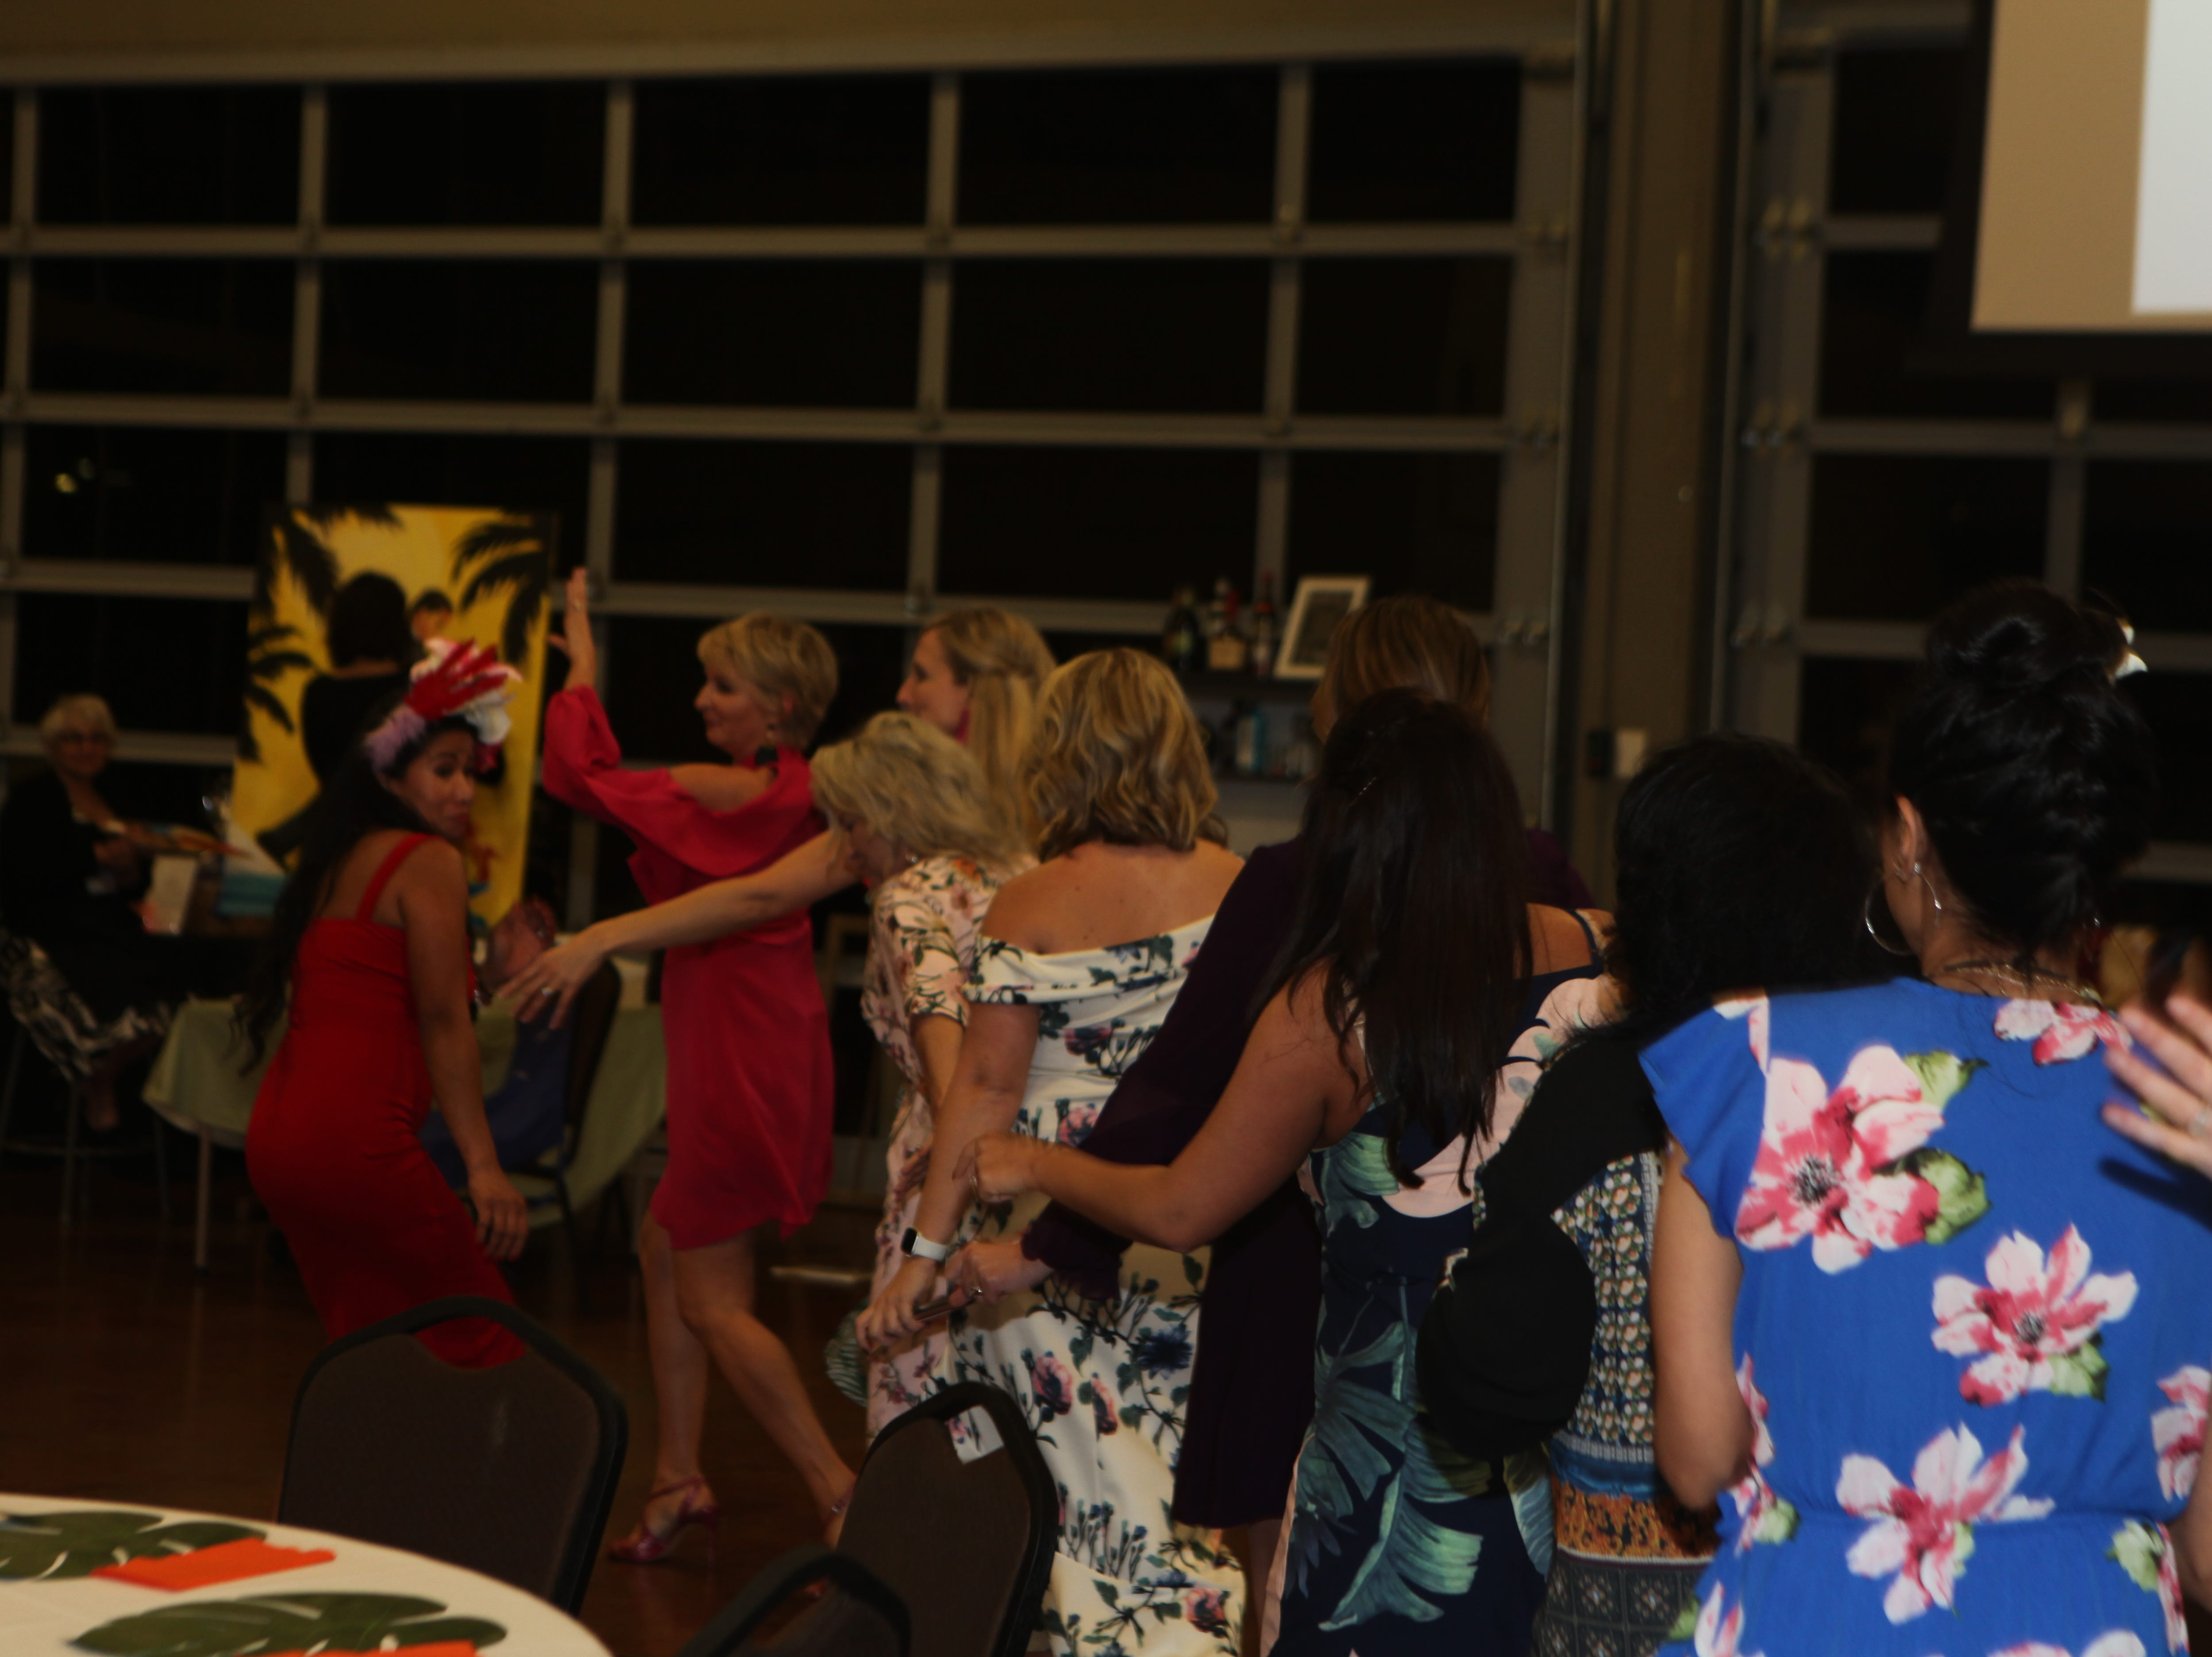 A spontaneous conga line at the Fort Campbell Spouses Club Very Important Charity Event on March 9, 2019.